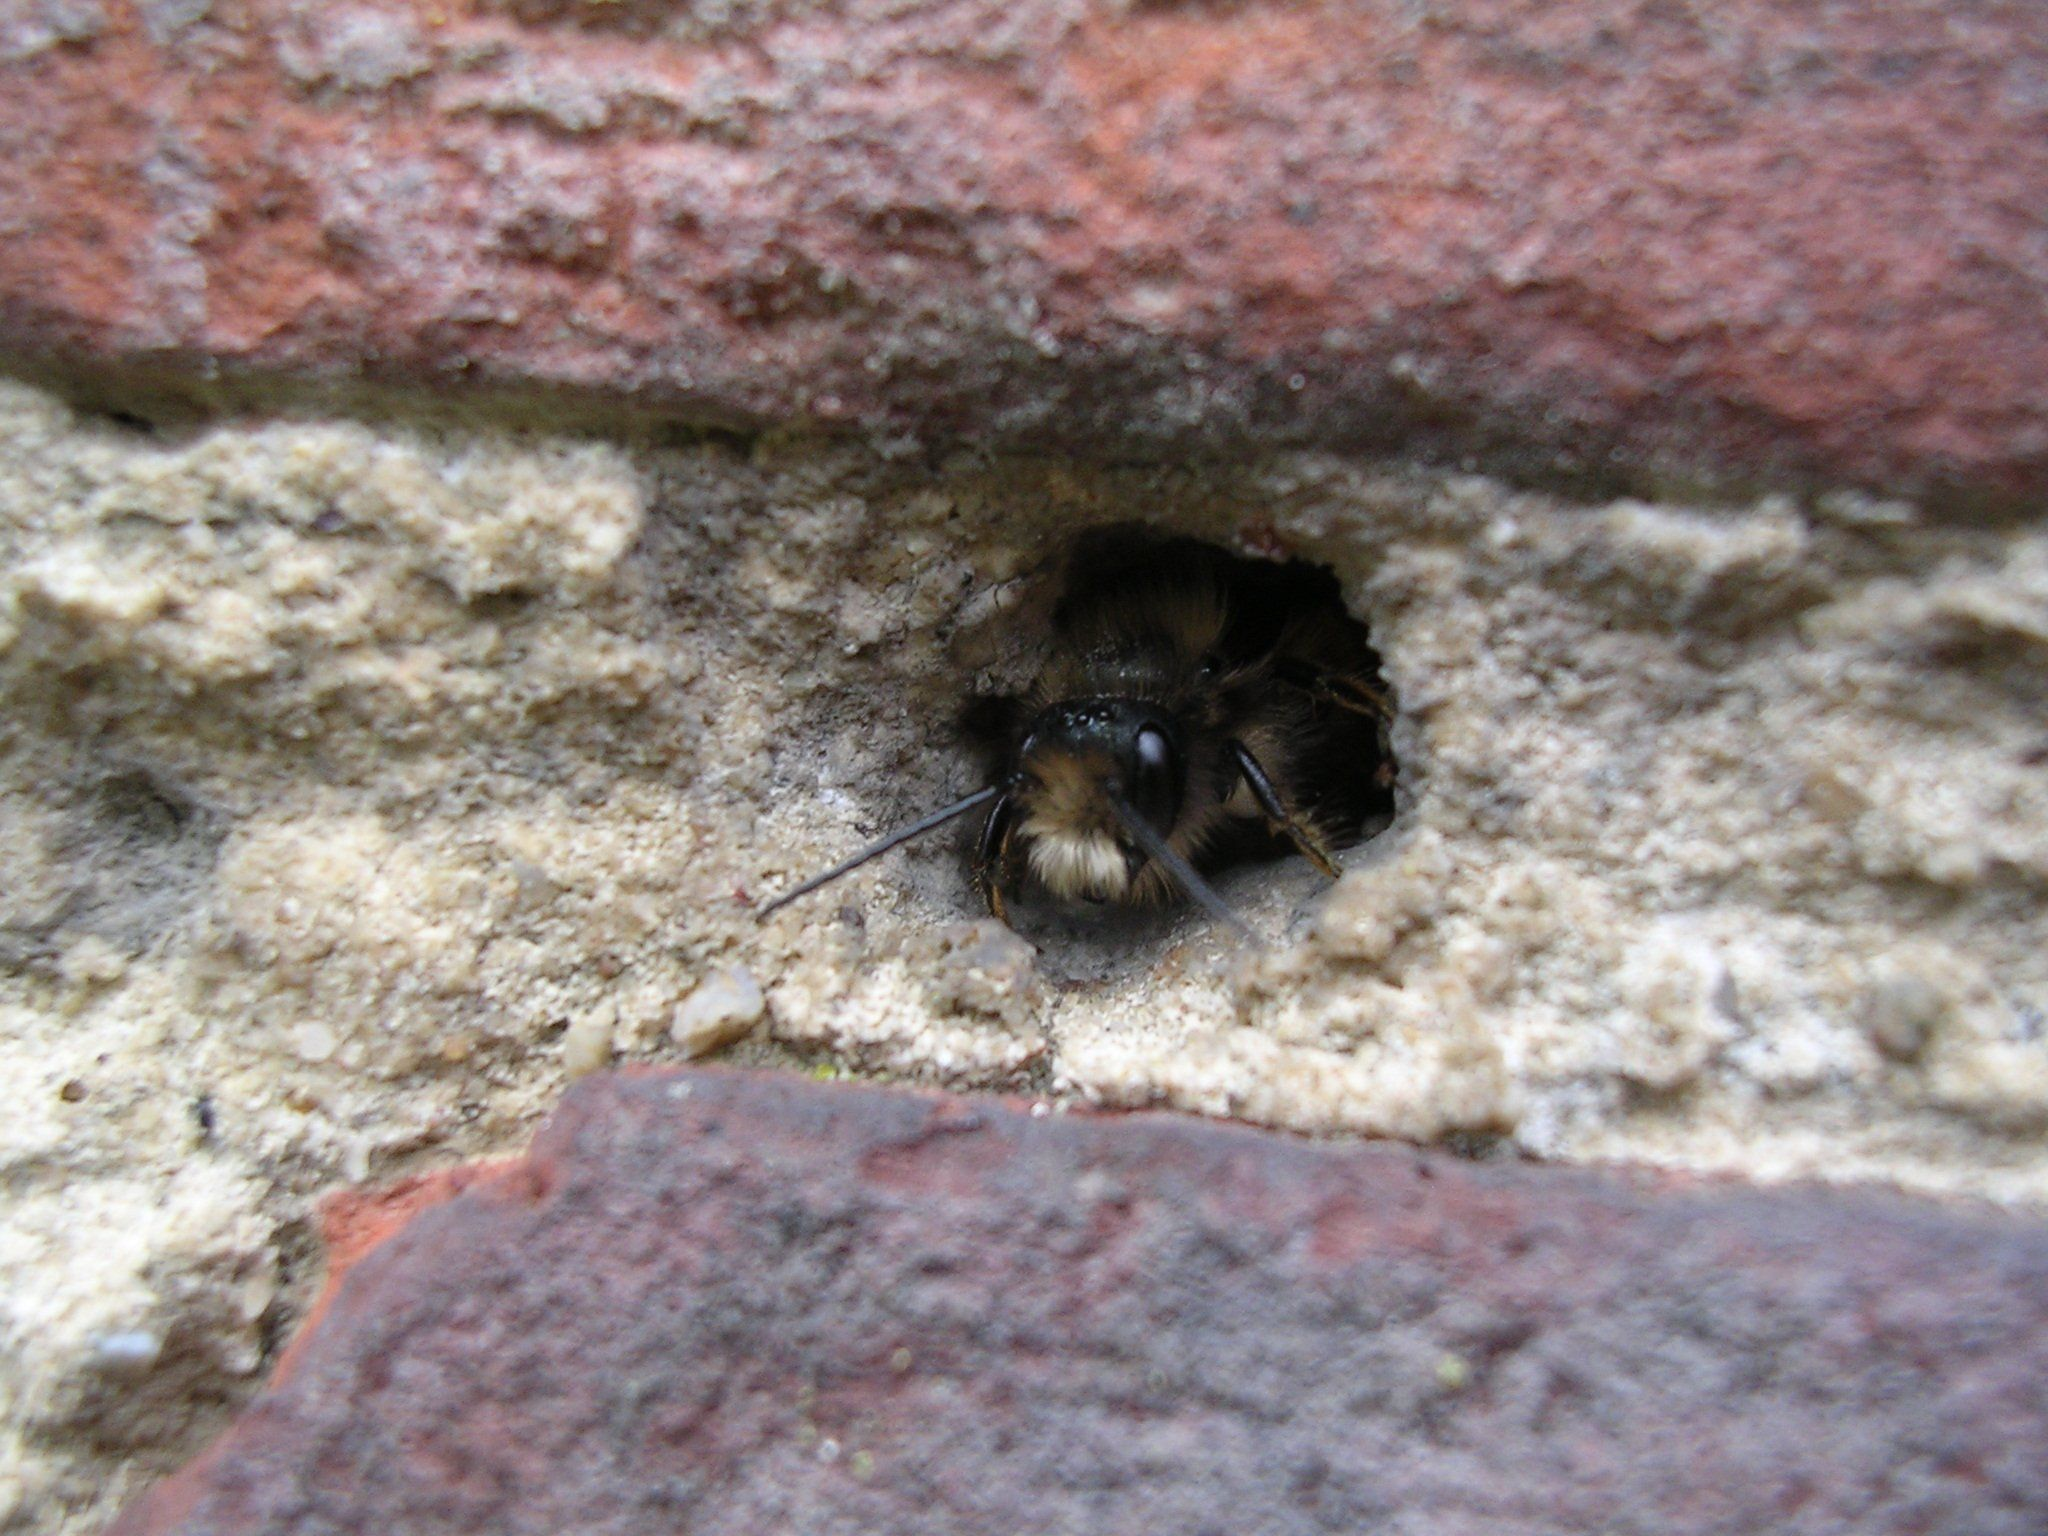 fc5deaabde3dd1e6fb065bbb4b9c0121 - How To Get Rid Of Wasps In A Stone Wall